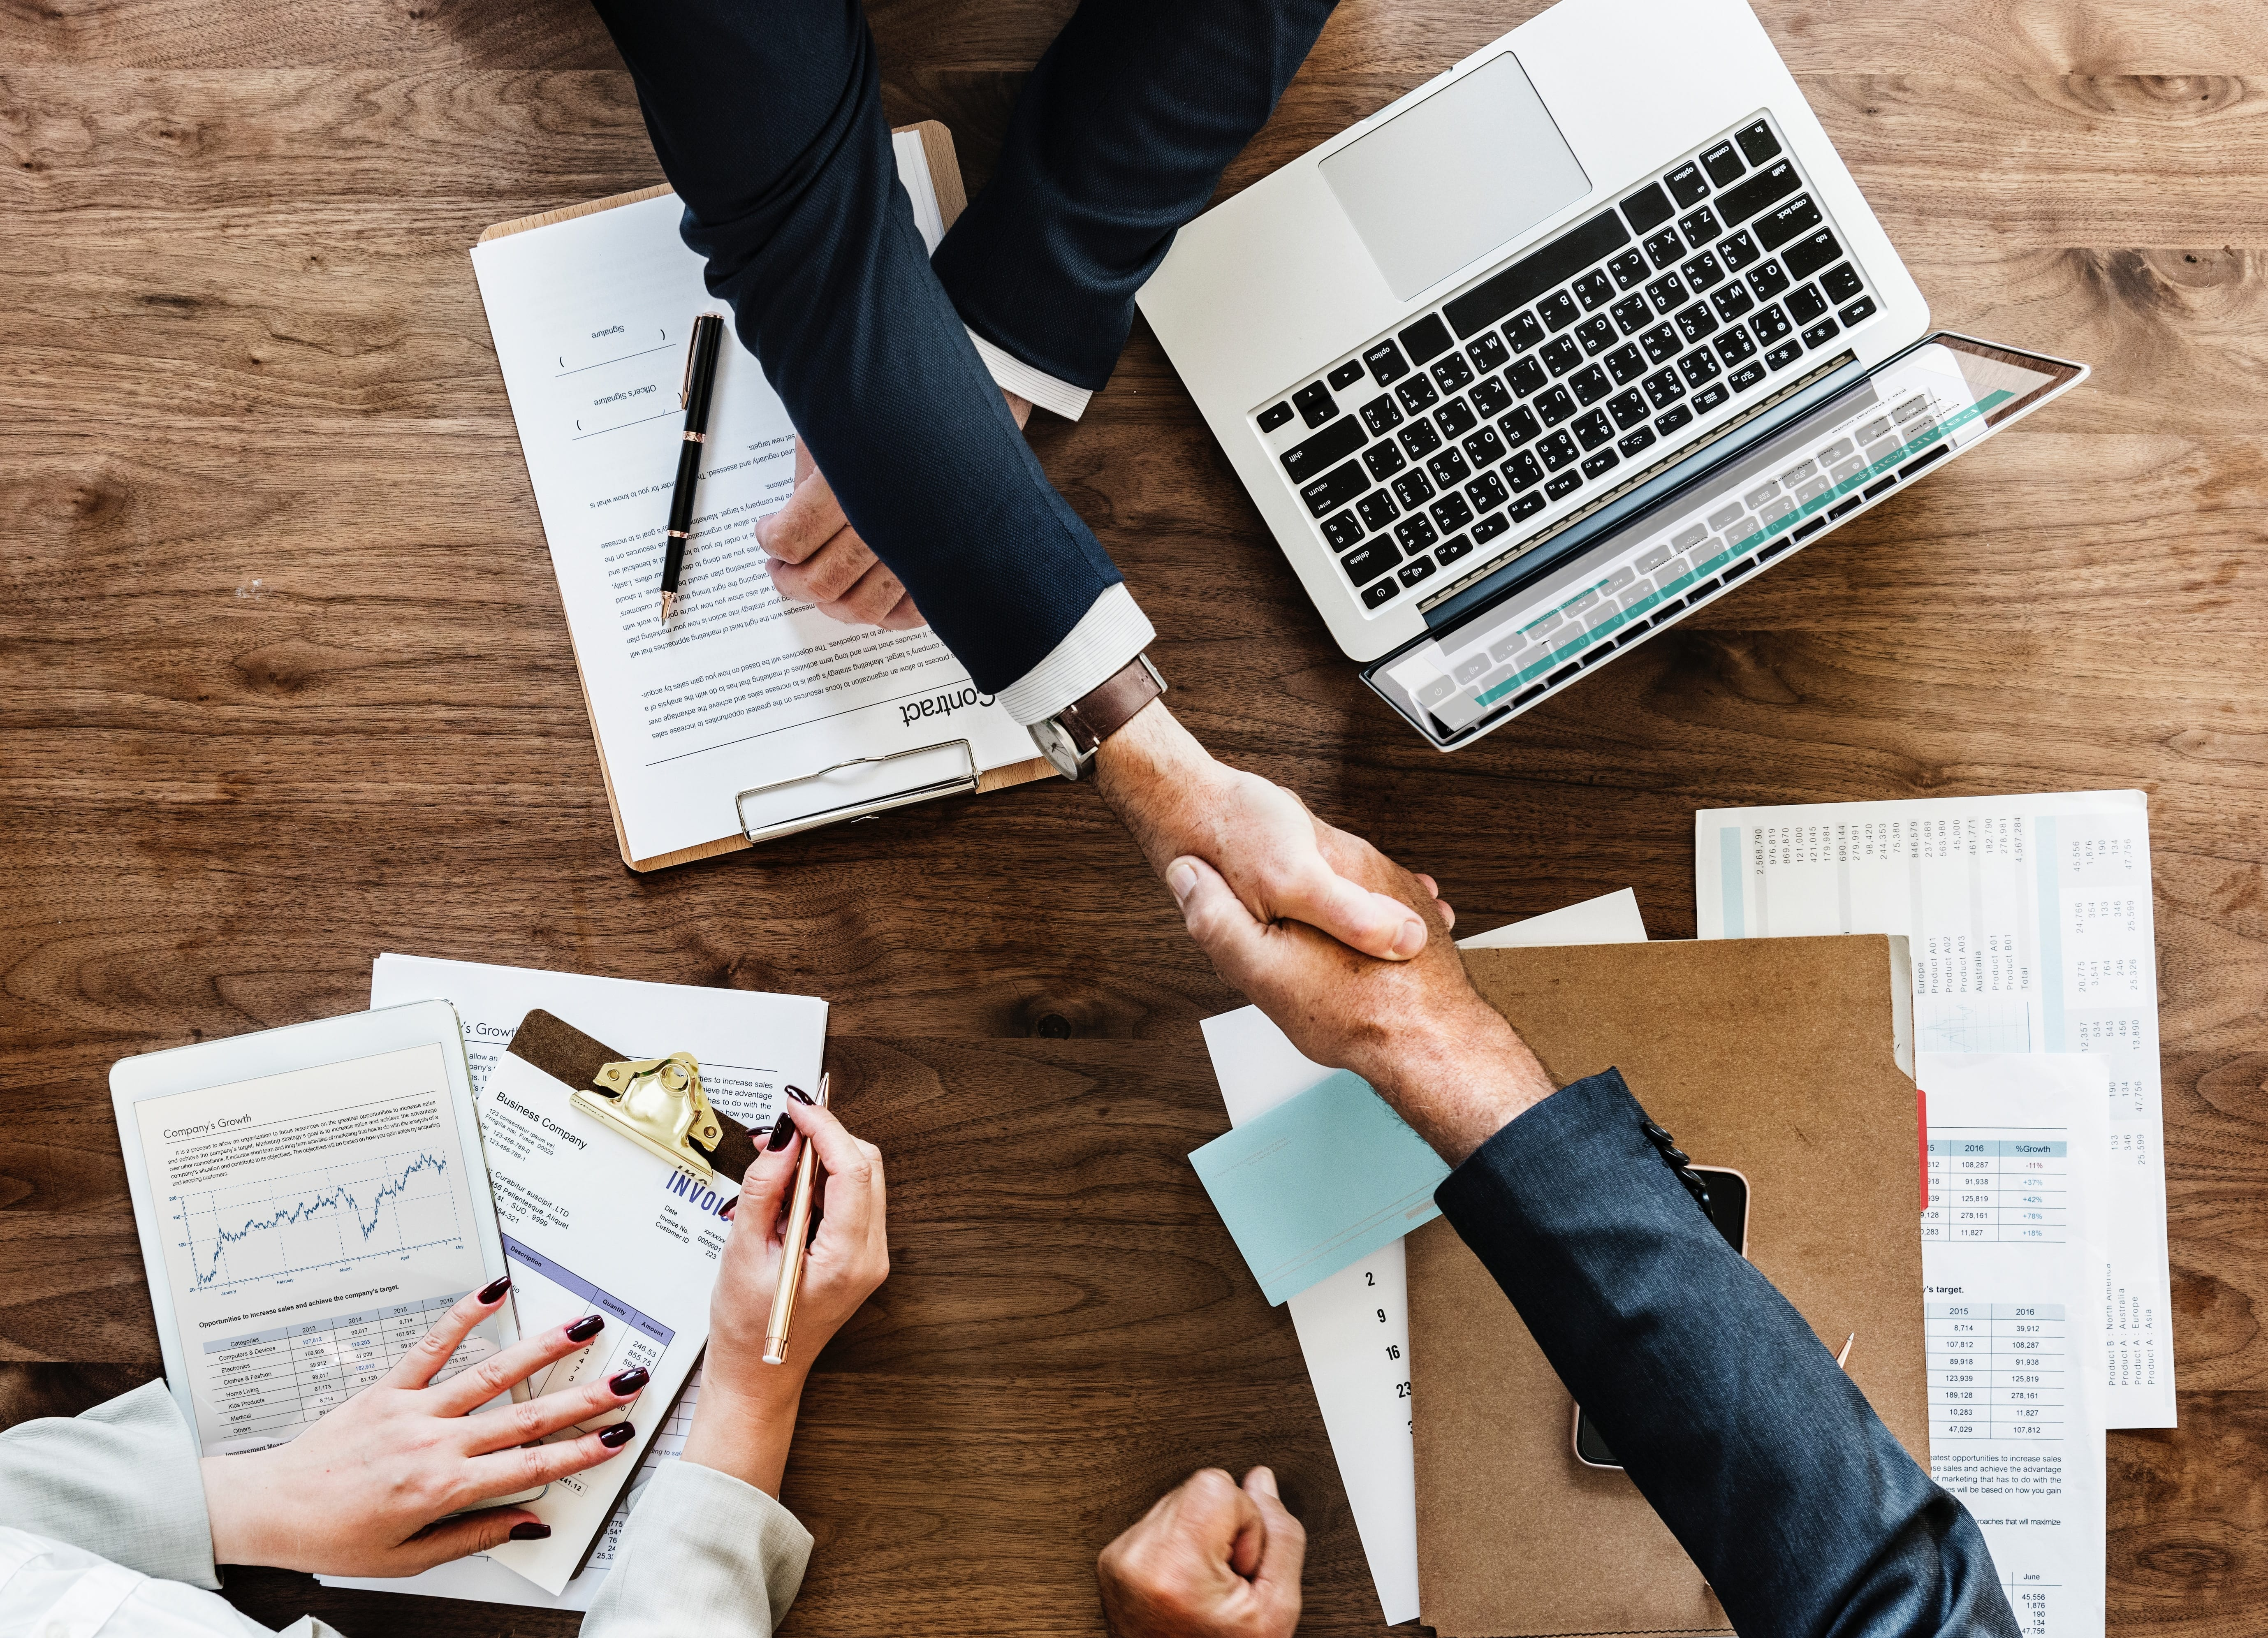 People shaking hands over a table with paperwork and a laptop computer; image by Rawpixel, via Unsplash.com.